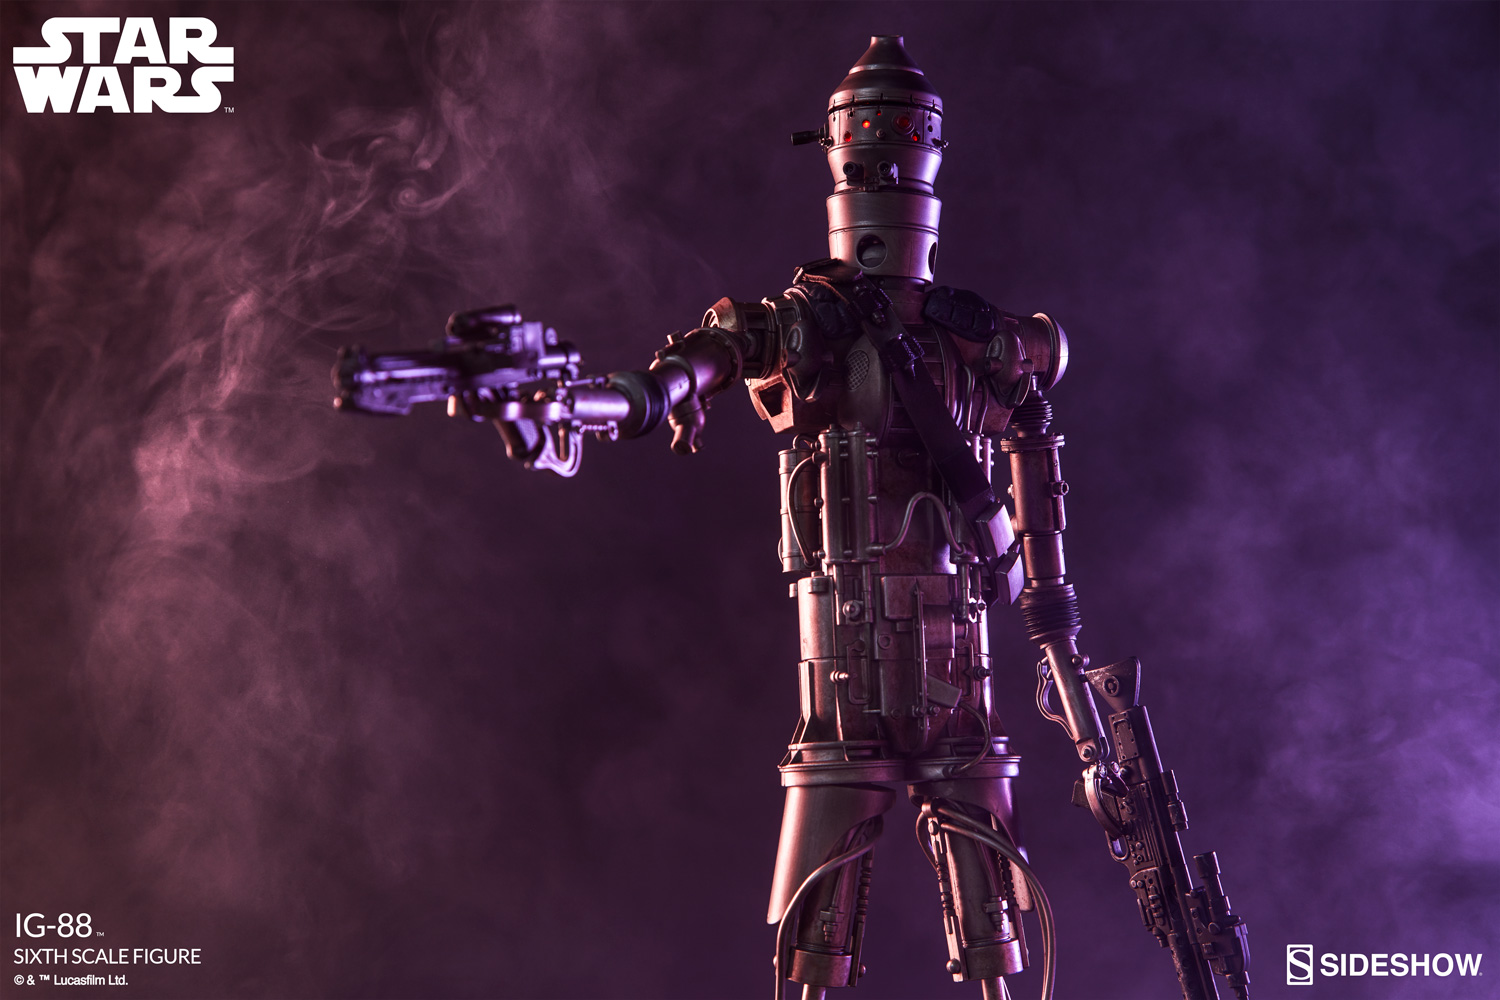 osw.zone Collect your Bounty on these IG-88 Sixth Scale Figure Gallery Updates!